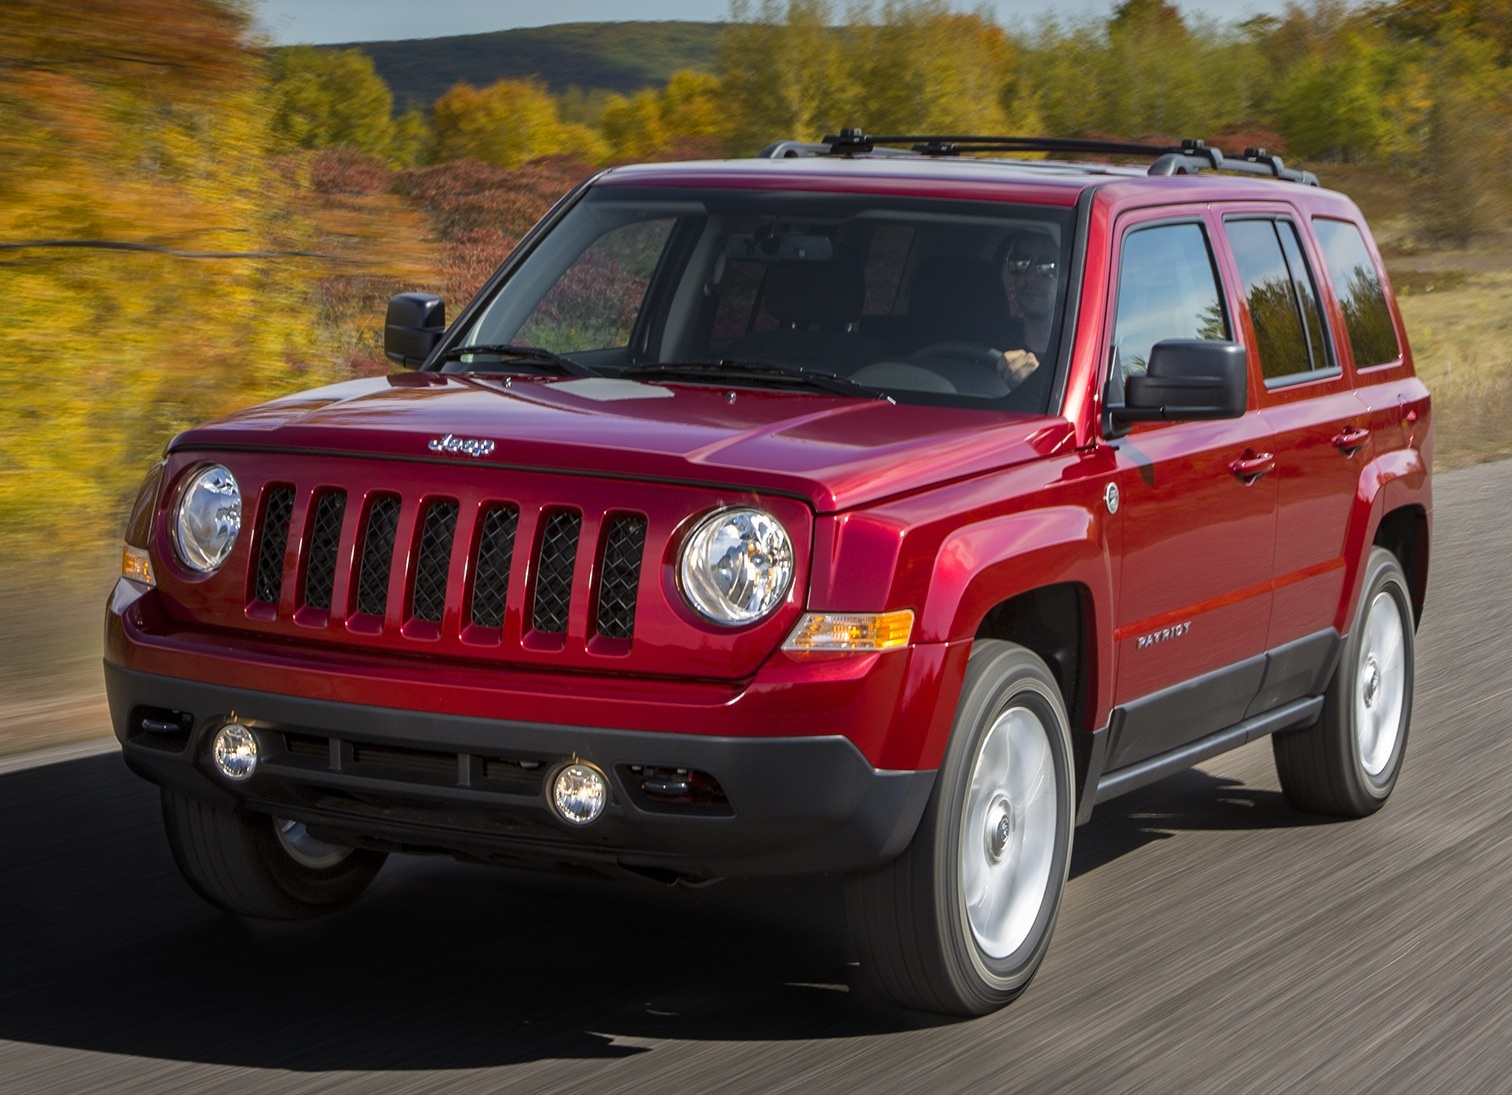 new 2014 2015 jeep patriot for sale seattle wa   cargurus